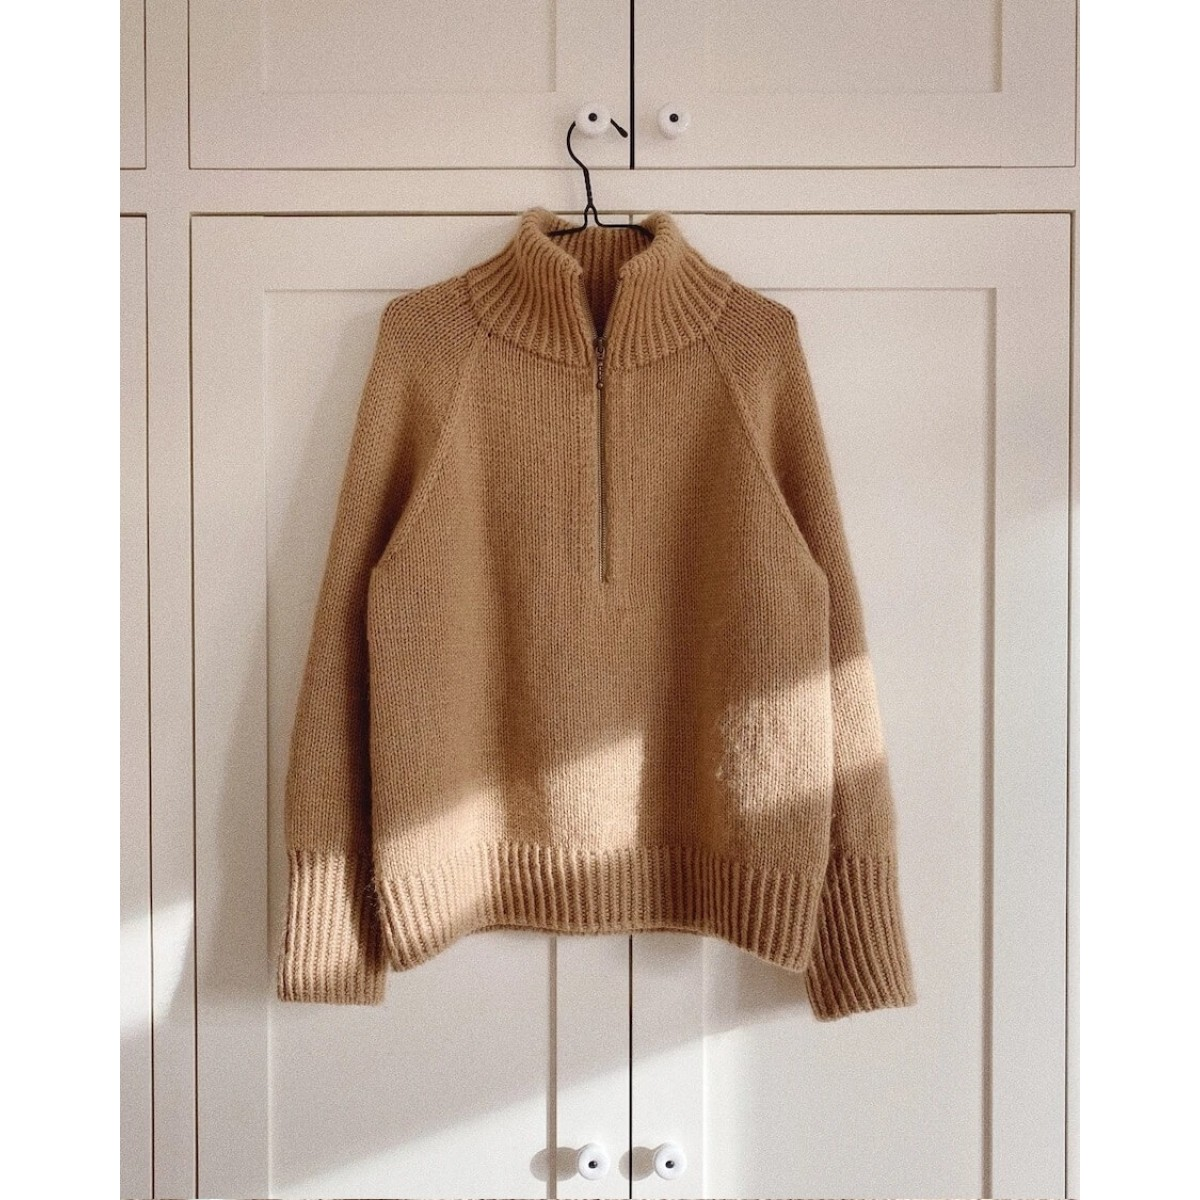 Sipper Sweater